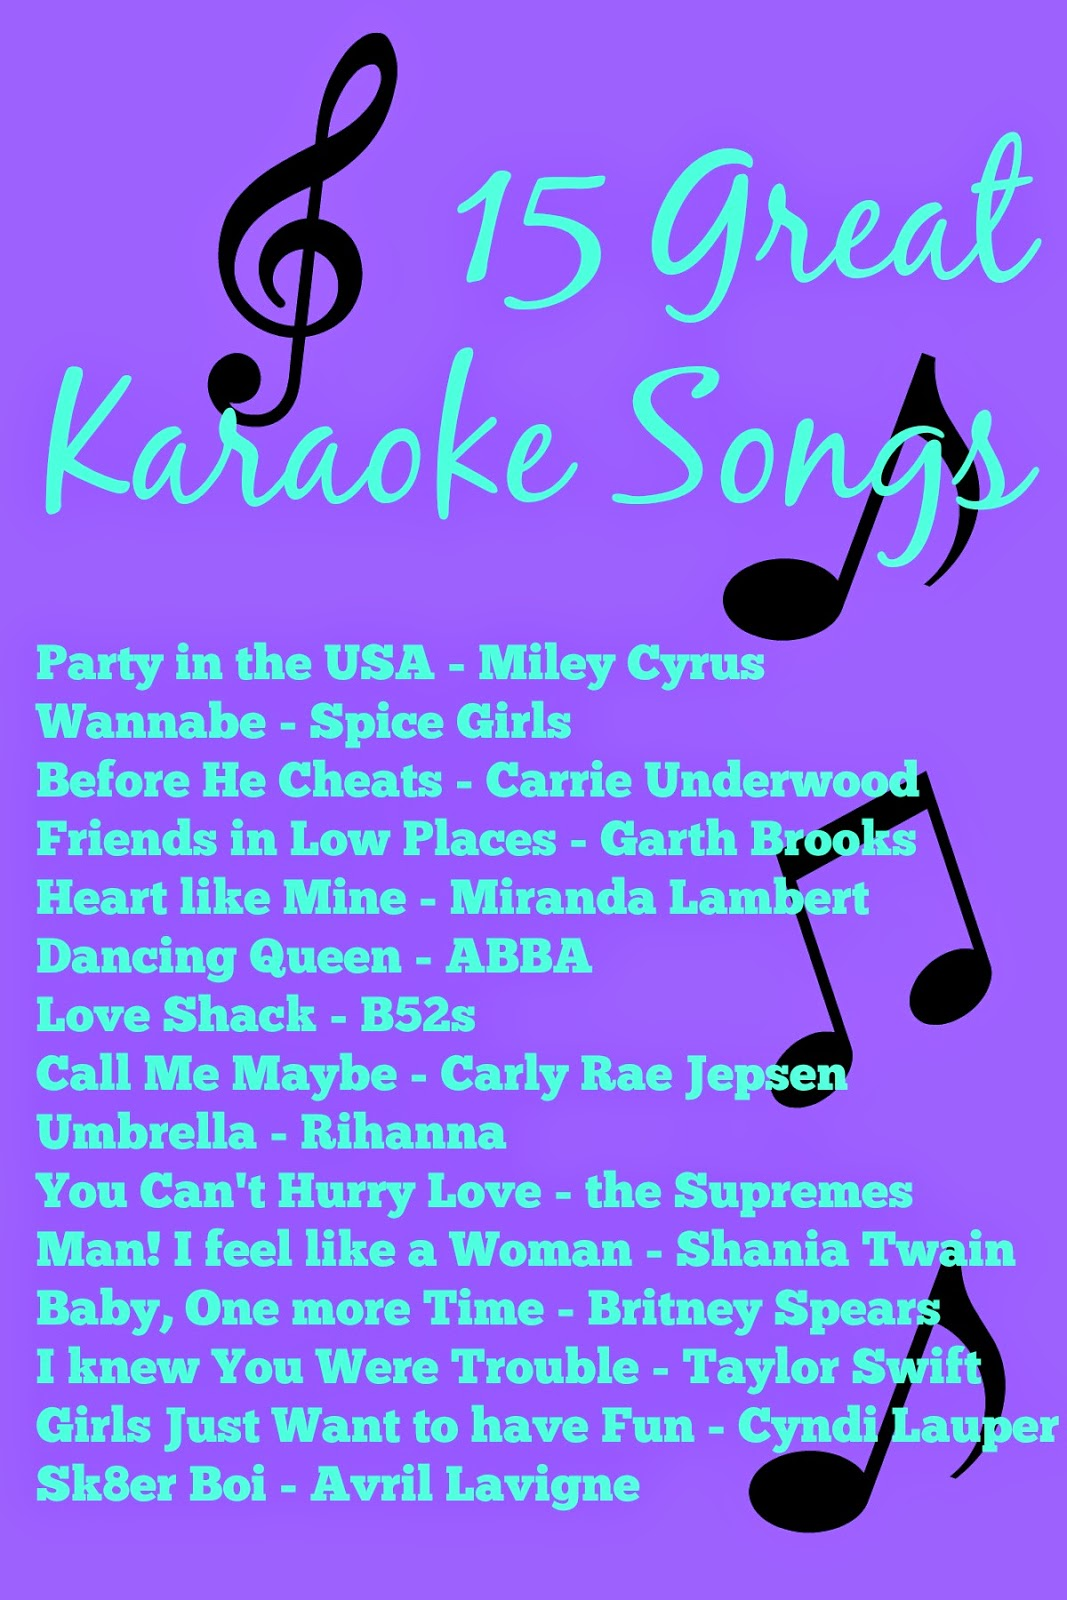 female karaoke songs, southern blogs, mississippi blogs, female bloggers,